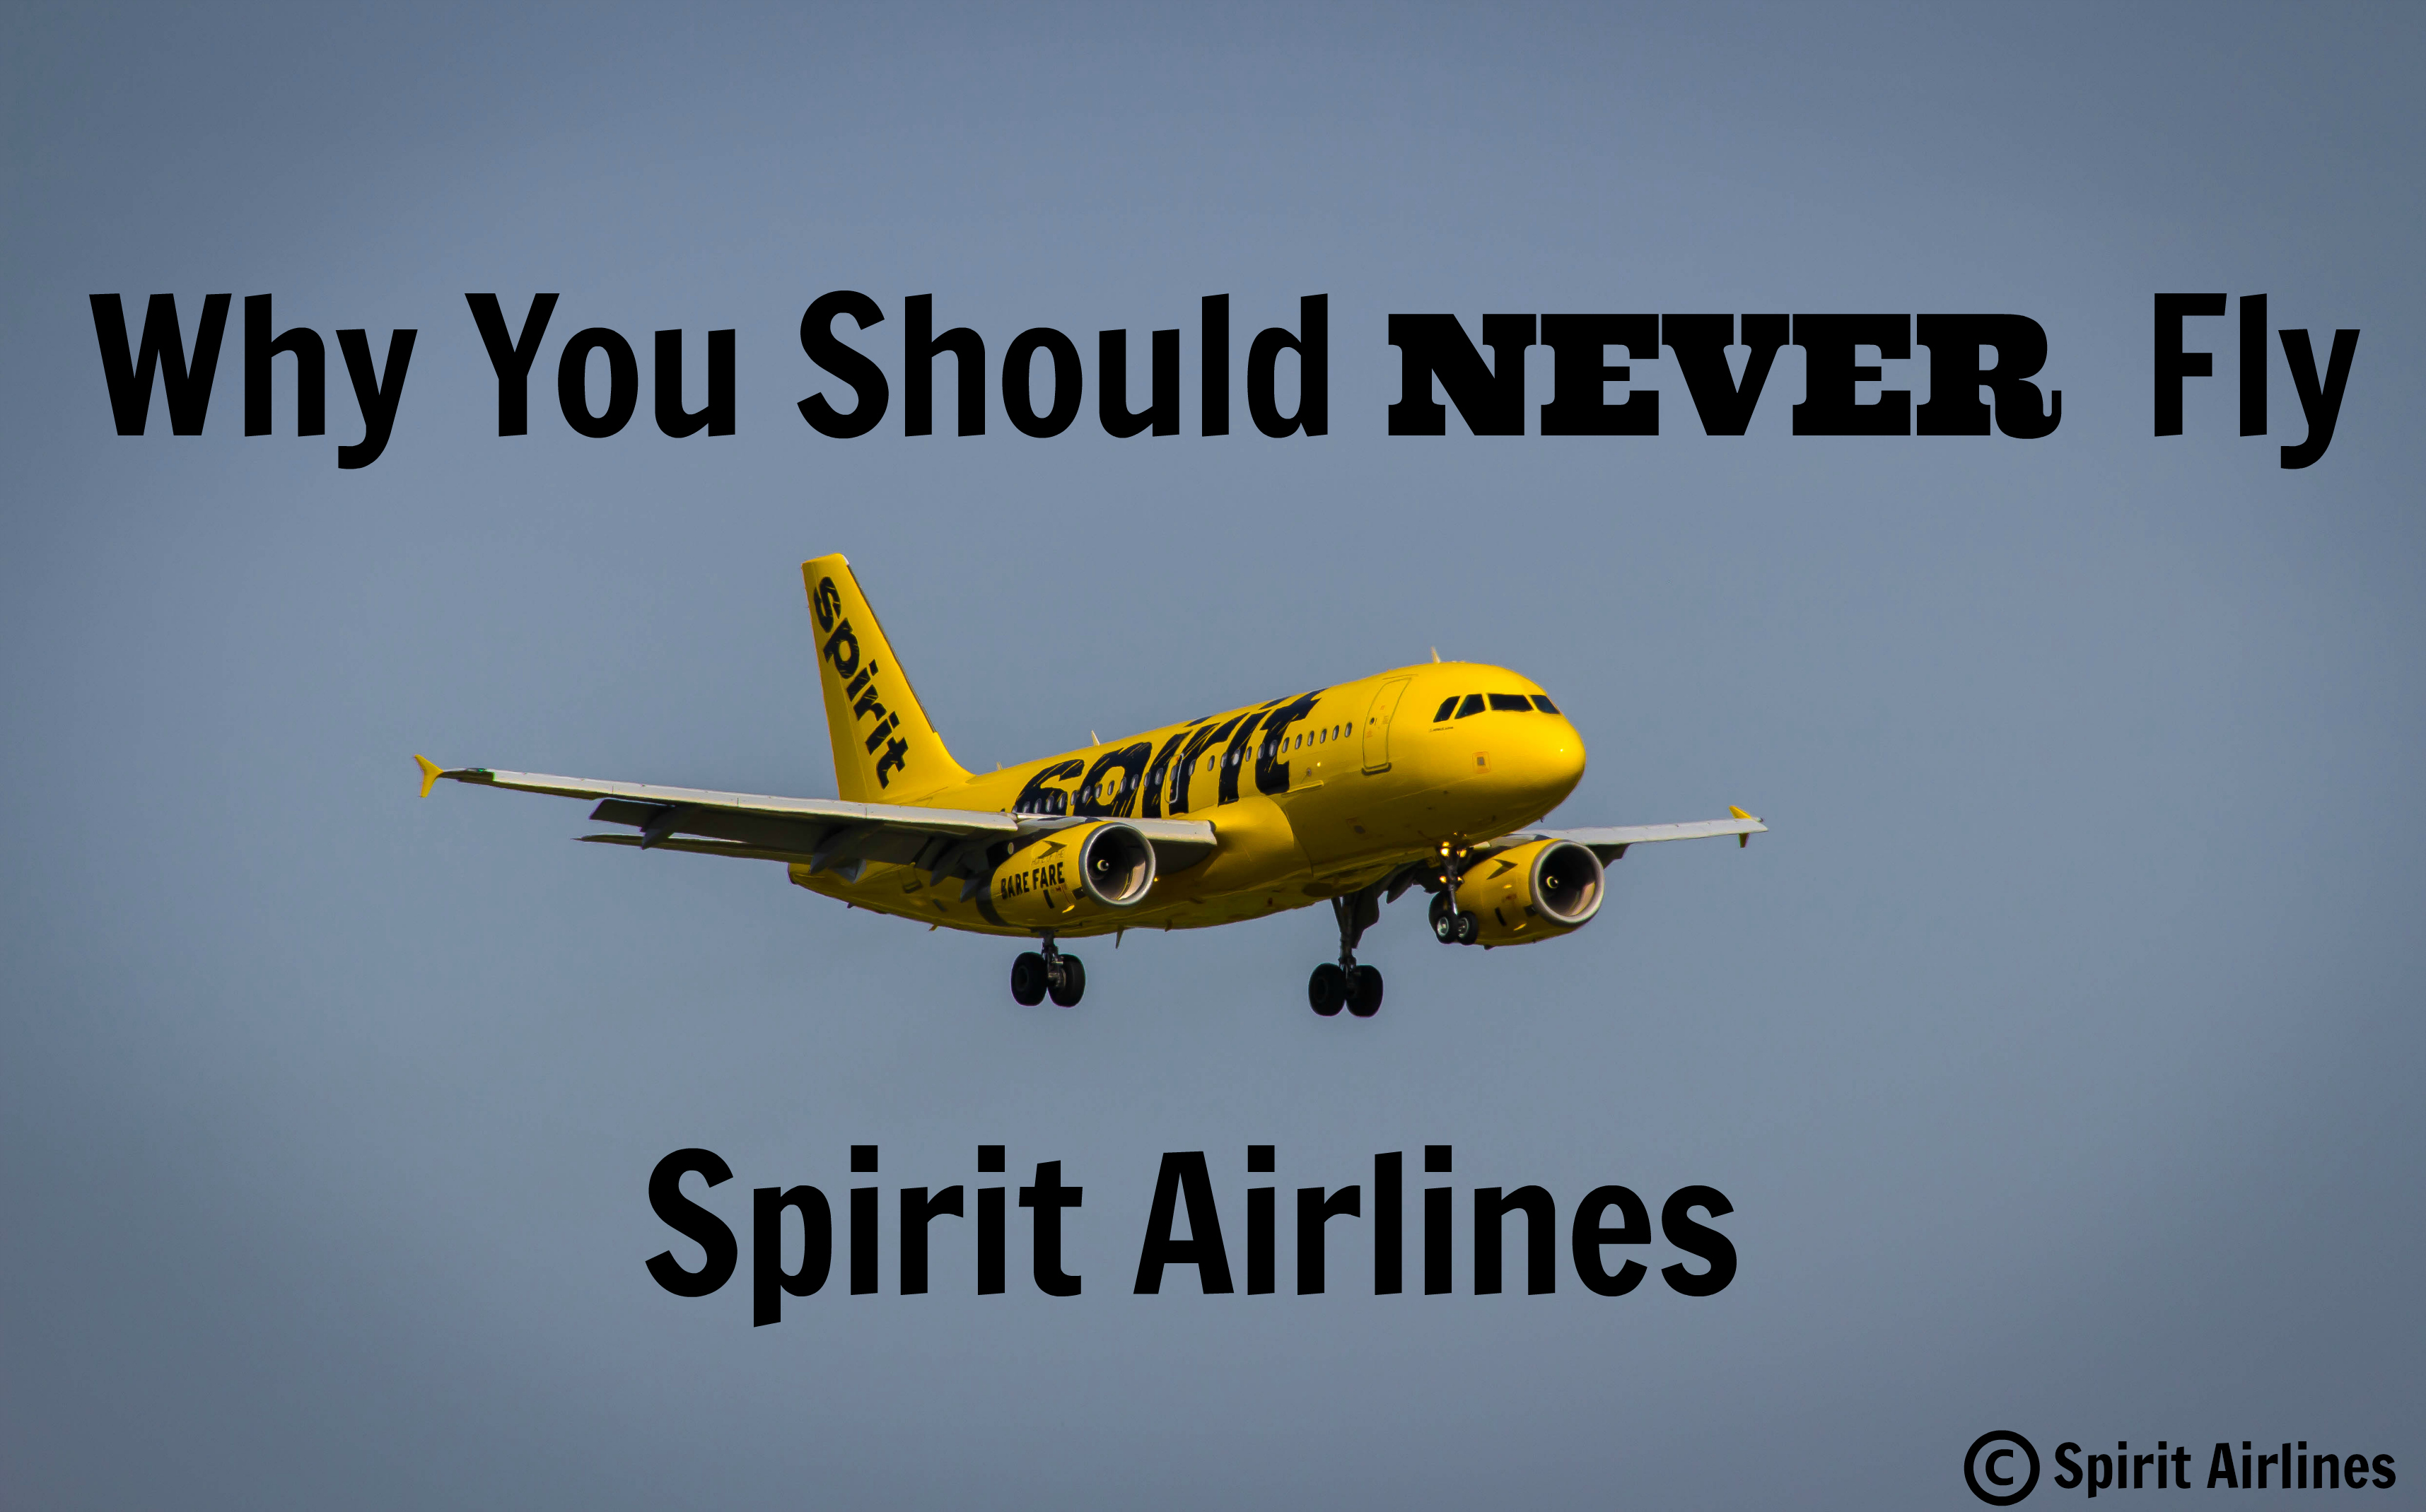 Courtesy of Spirit Airlines